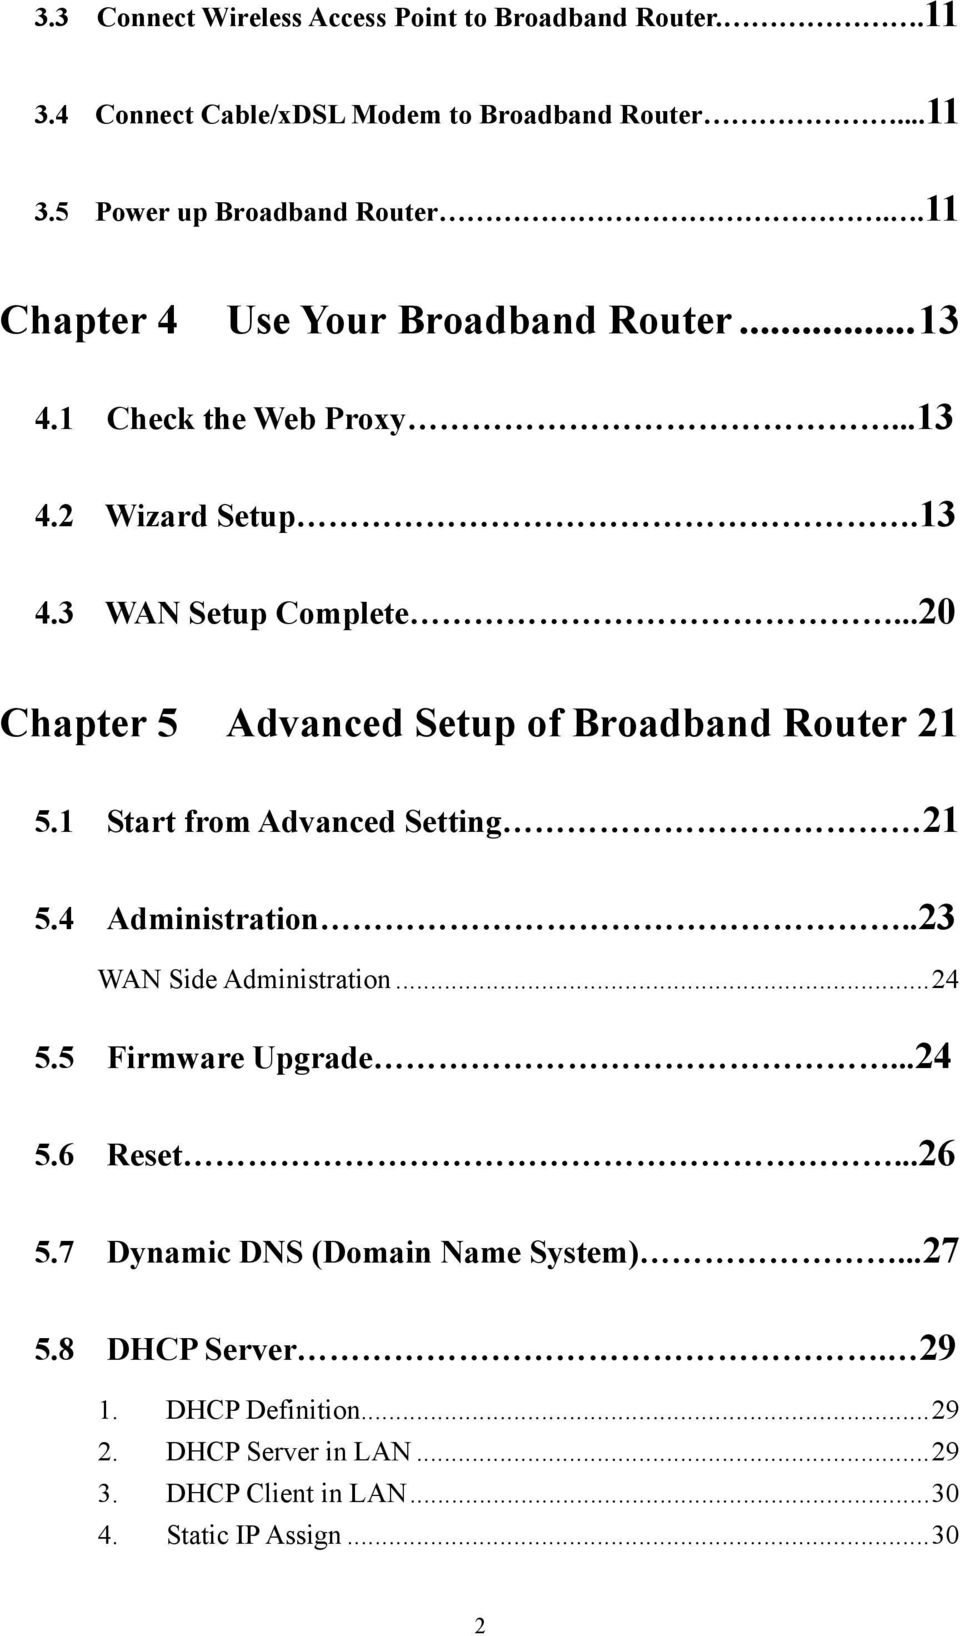 ..20 Chapter 5 Advanced Setup of Broadband Router 21 5.1 Start from Advanced Setting 21 5.4 Administration..23 WAN Side Administration...24 5.